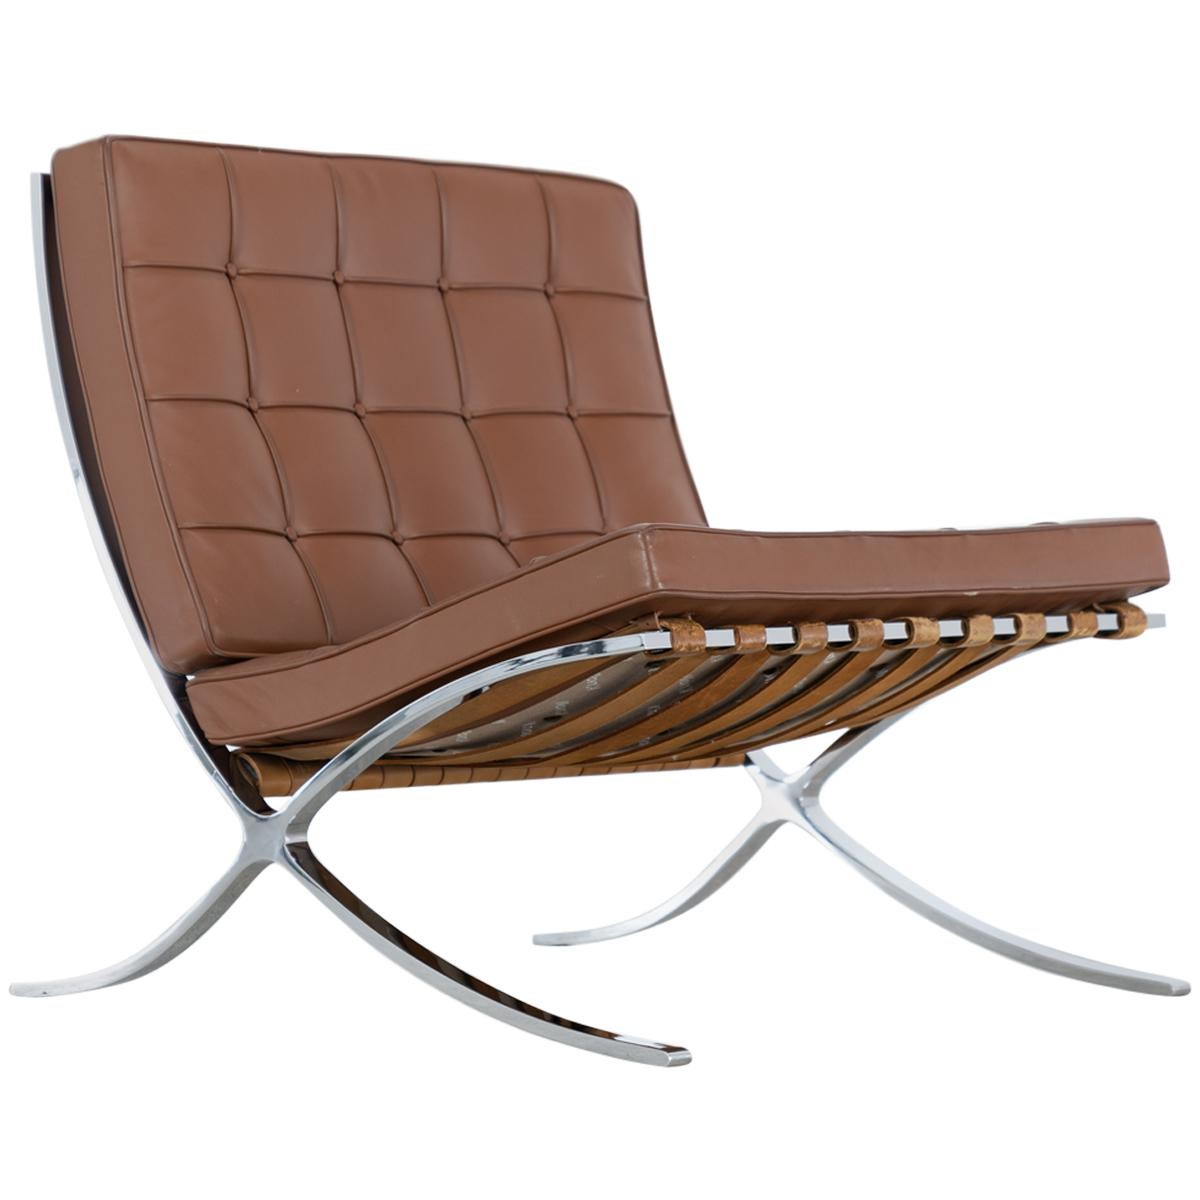 Ludwig Mies van der Rohe, Barcelona Chair, 1962 by Knoll International Leather